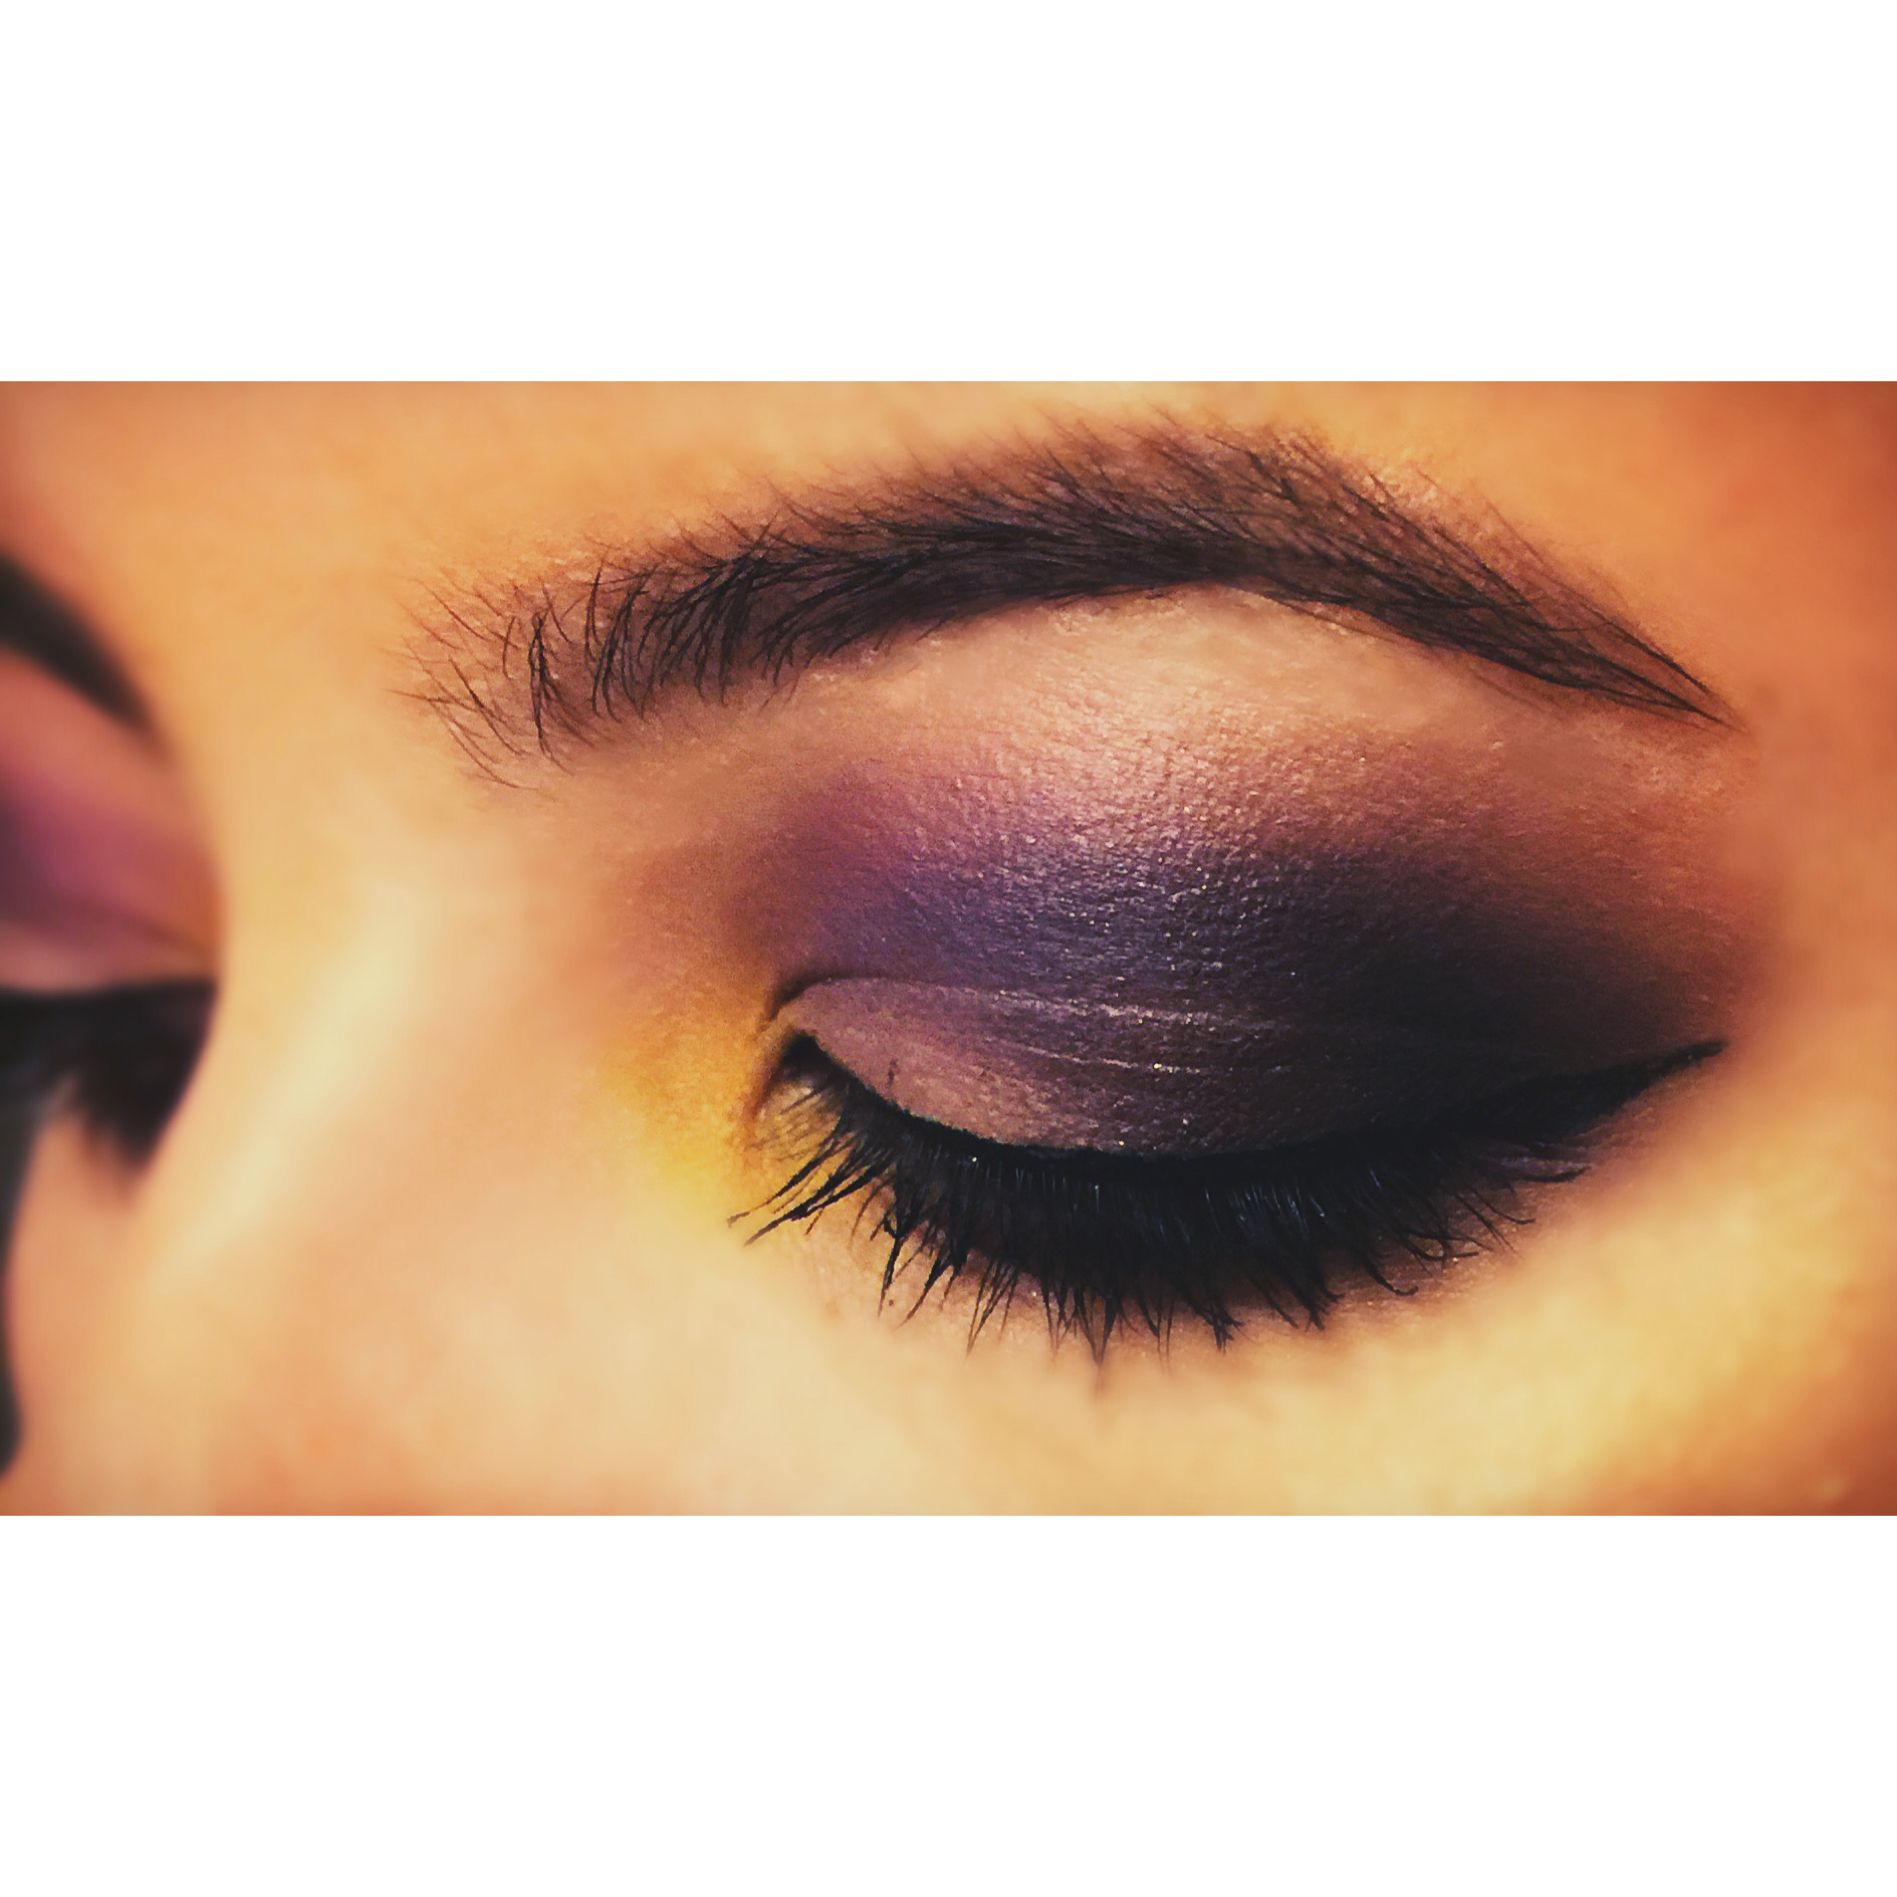 Makeup look my friend did on me the other day